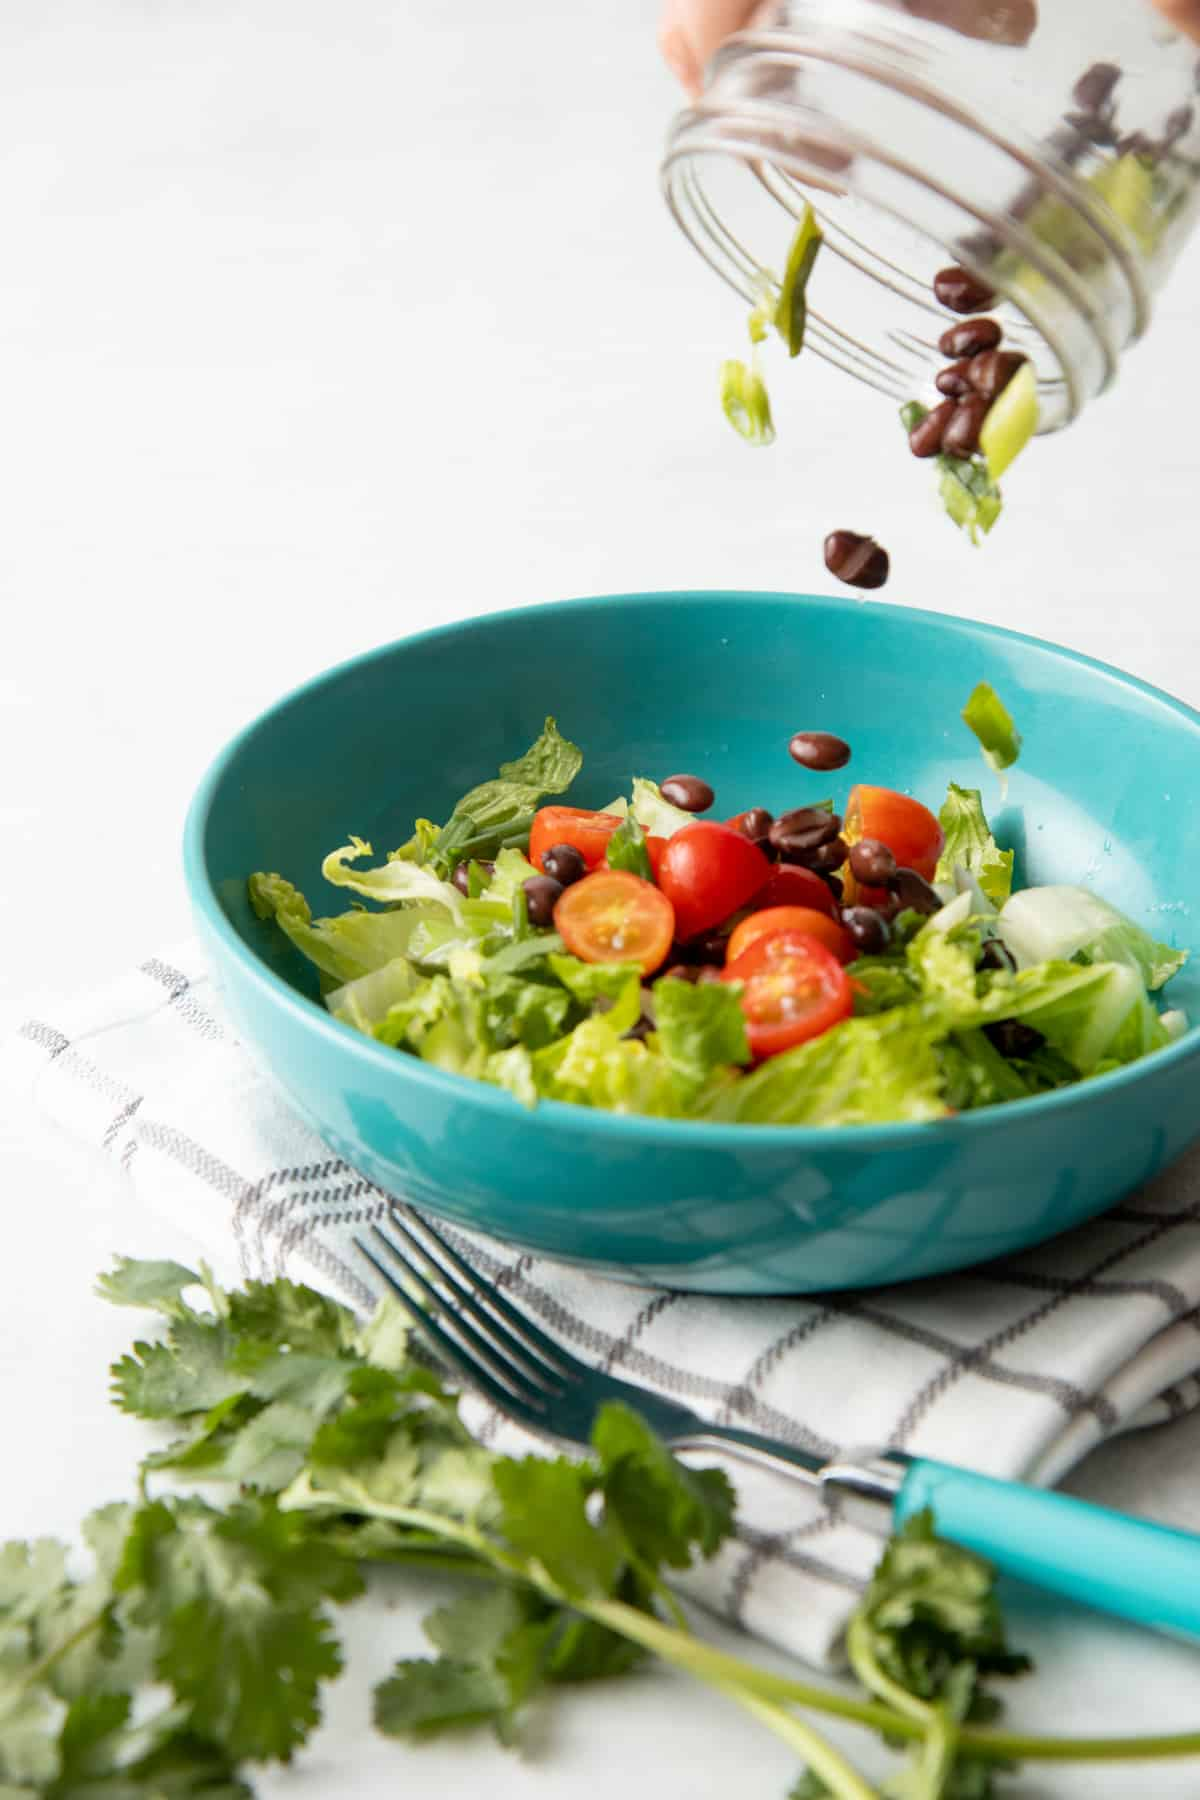 Black beans and lettuce pour out of a jar into a teal bowl. The bowl is filled with lettuce, tomatoes, and black beans.